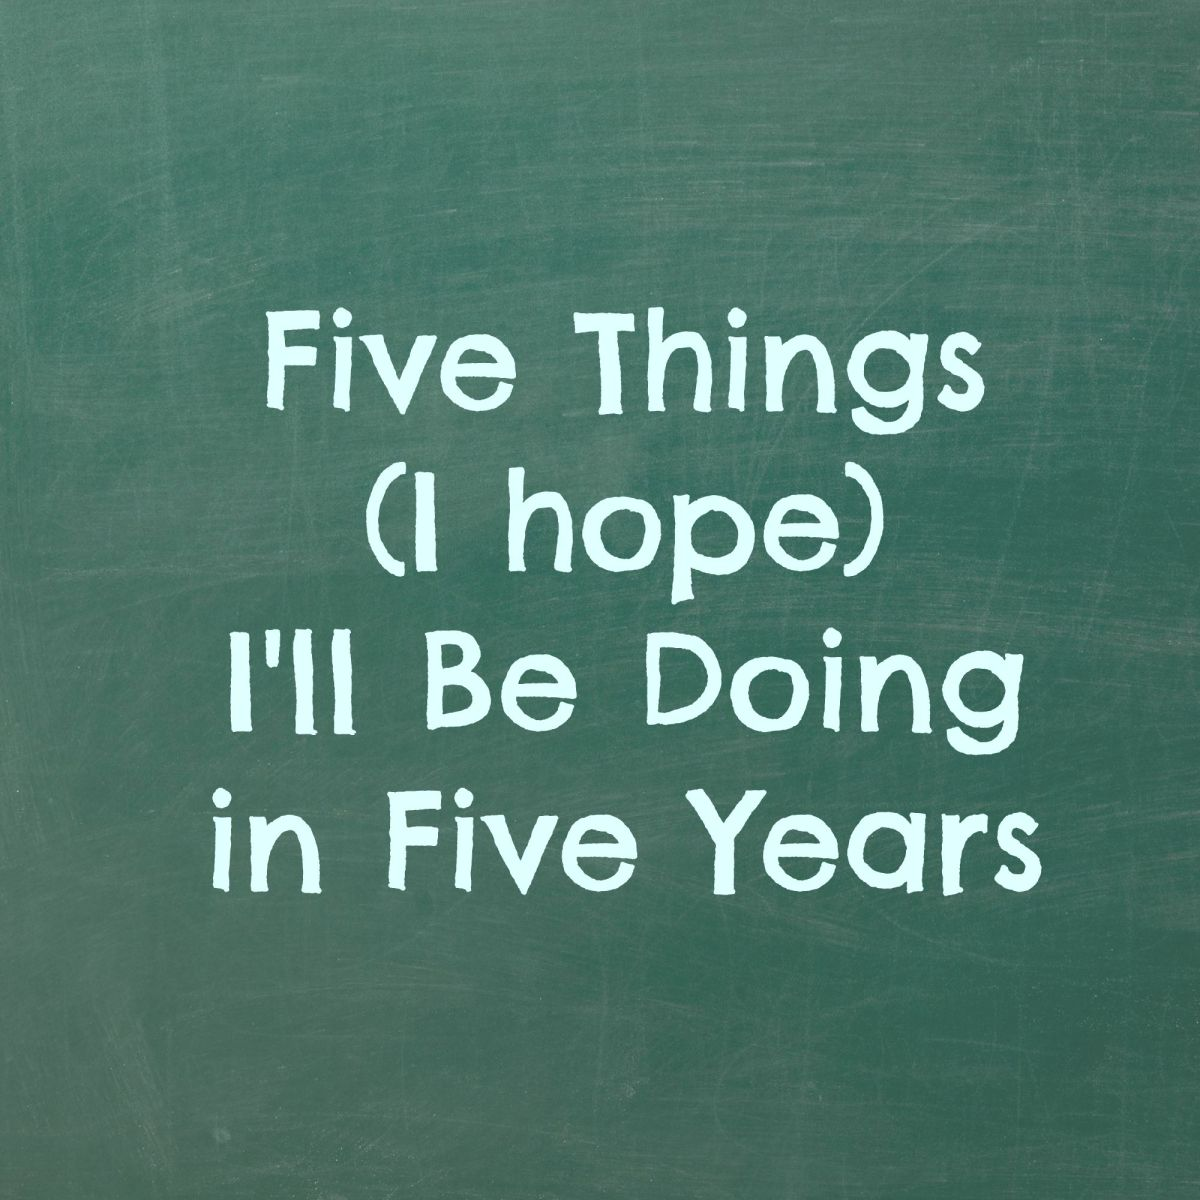 Friday Five: Five Things I'll Be Doing In Five Years